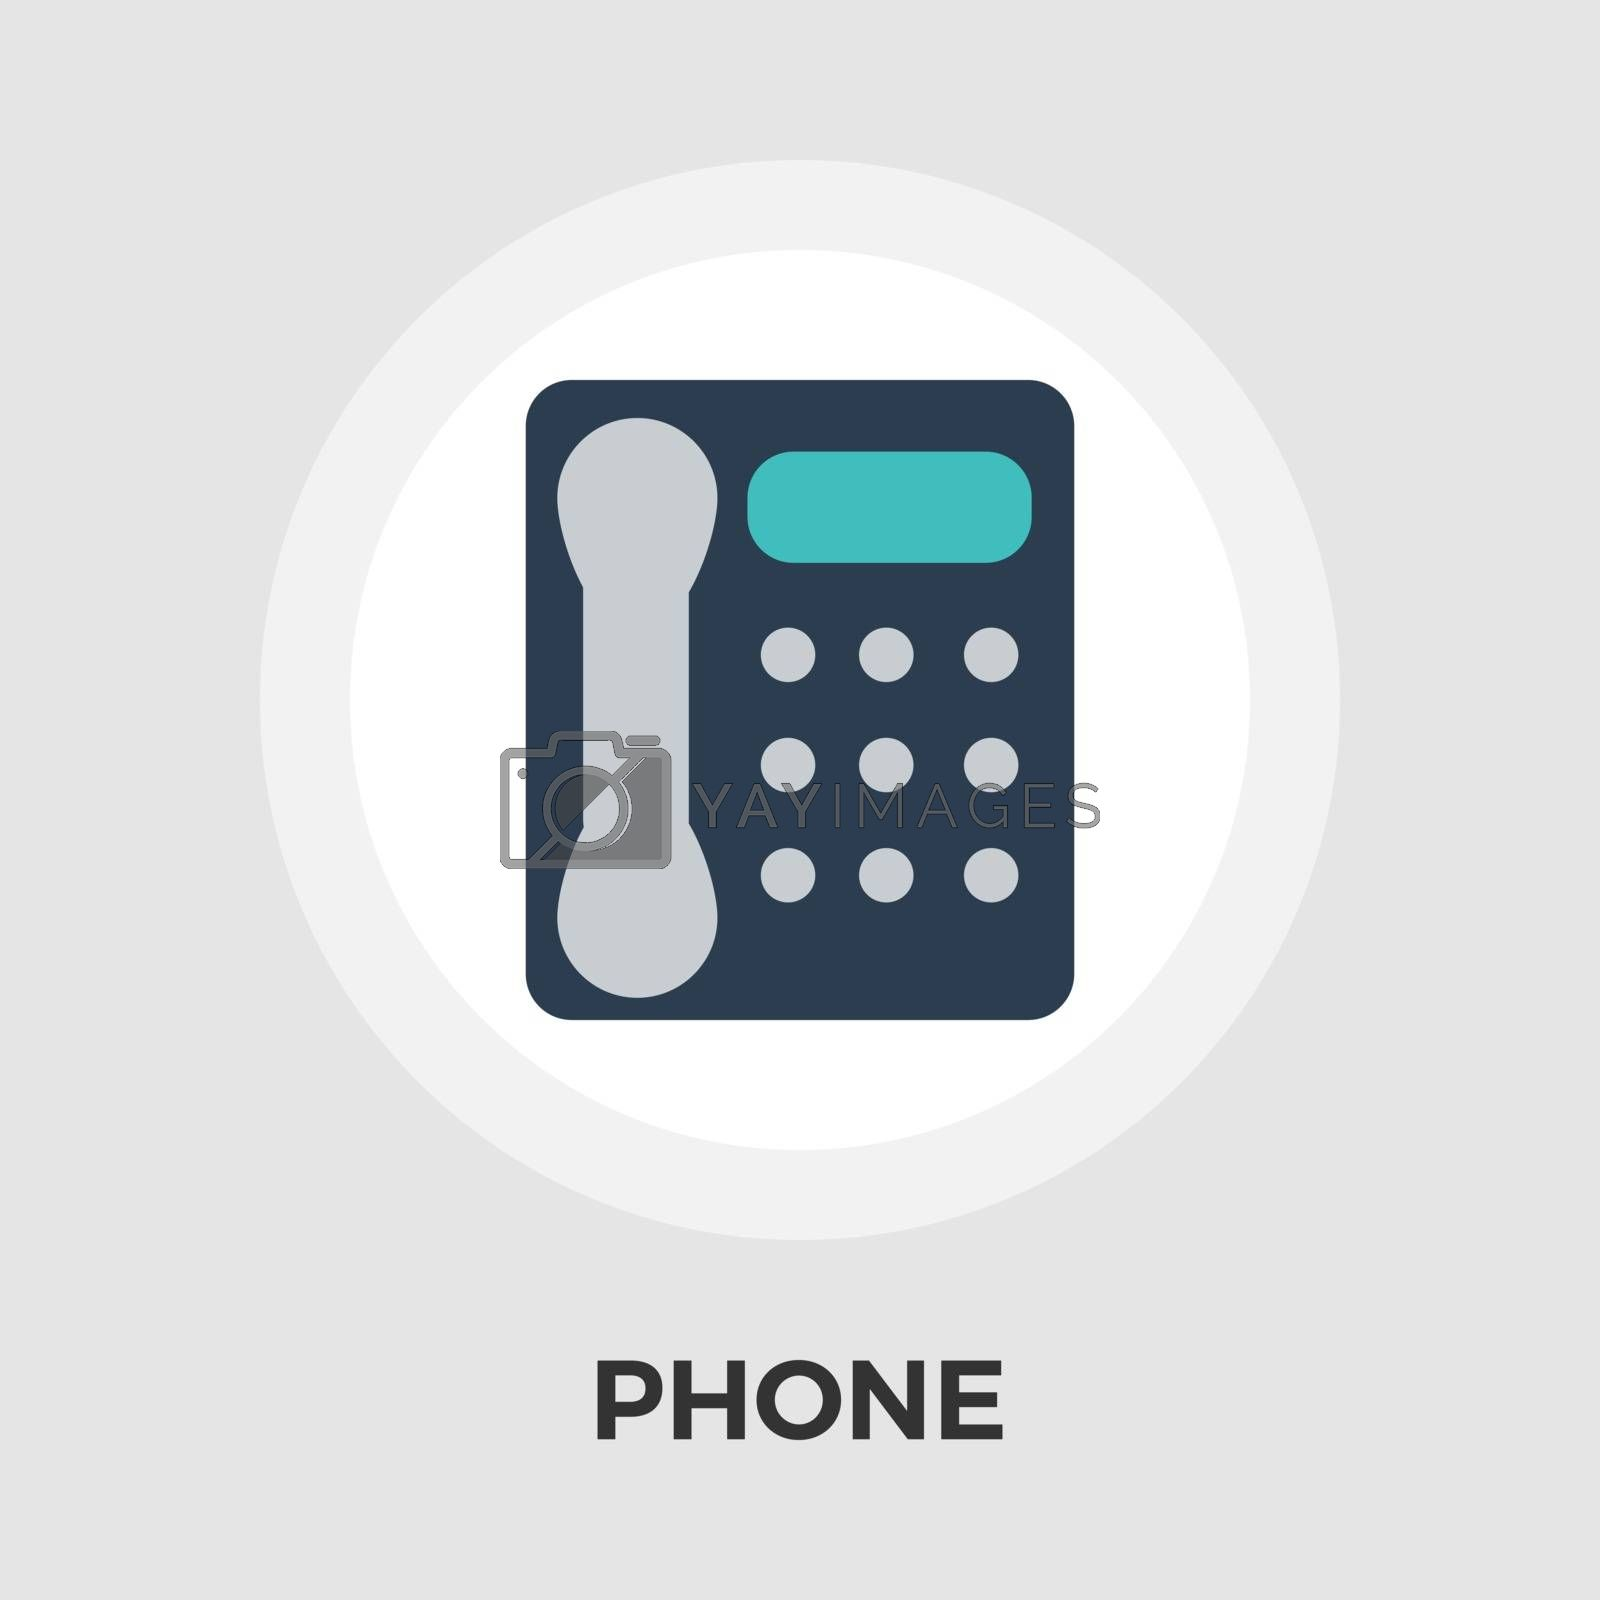 Office phone icon vector. Flat icon isolated on the white background. Editable EPS file. Vector illustration.